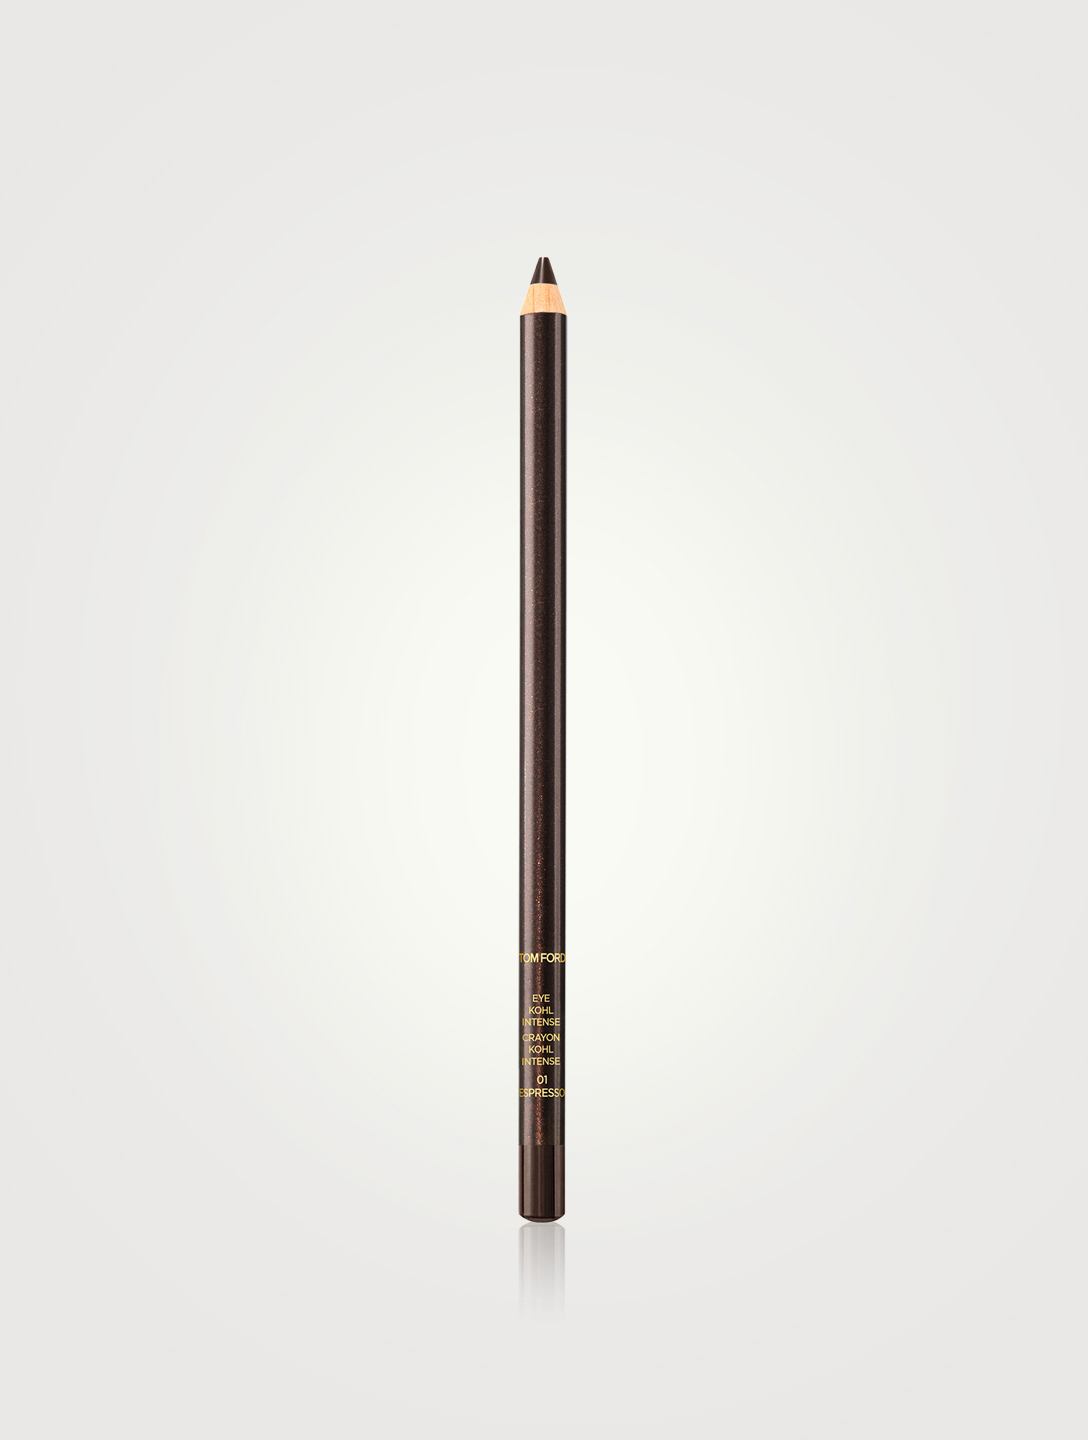 TOM FORD Eye Kohl Intense Beauty Brown